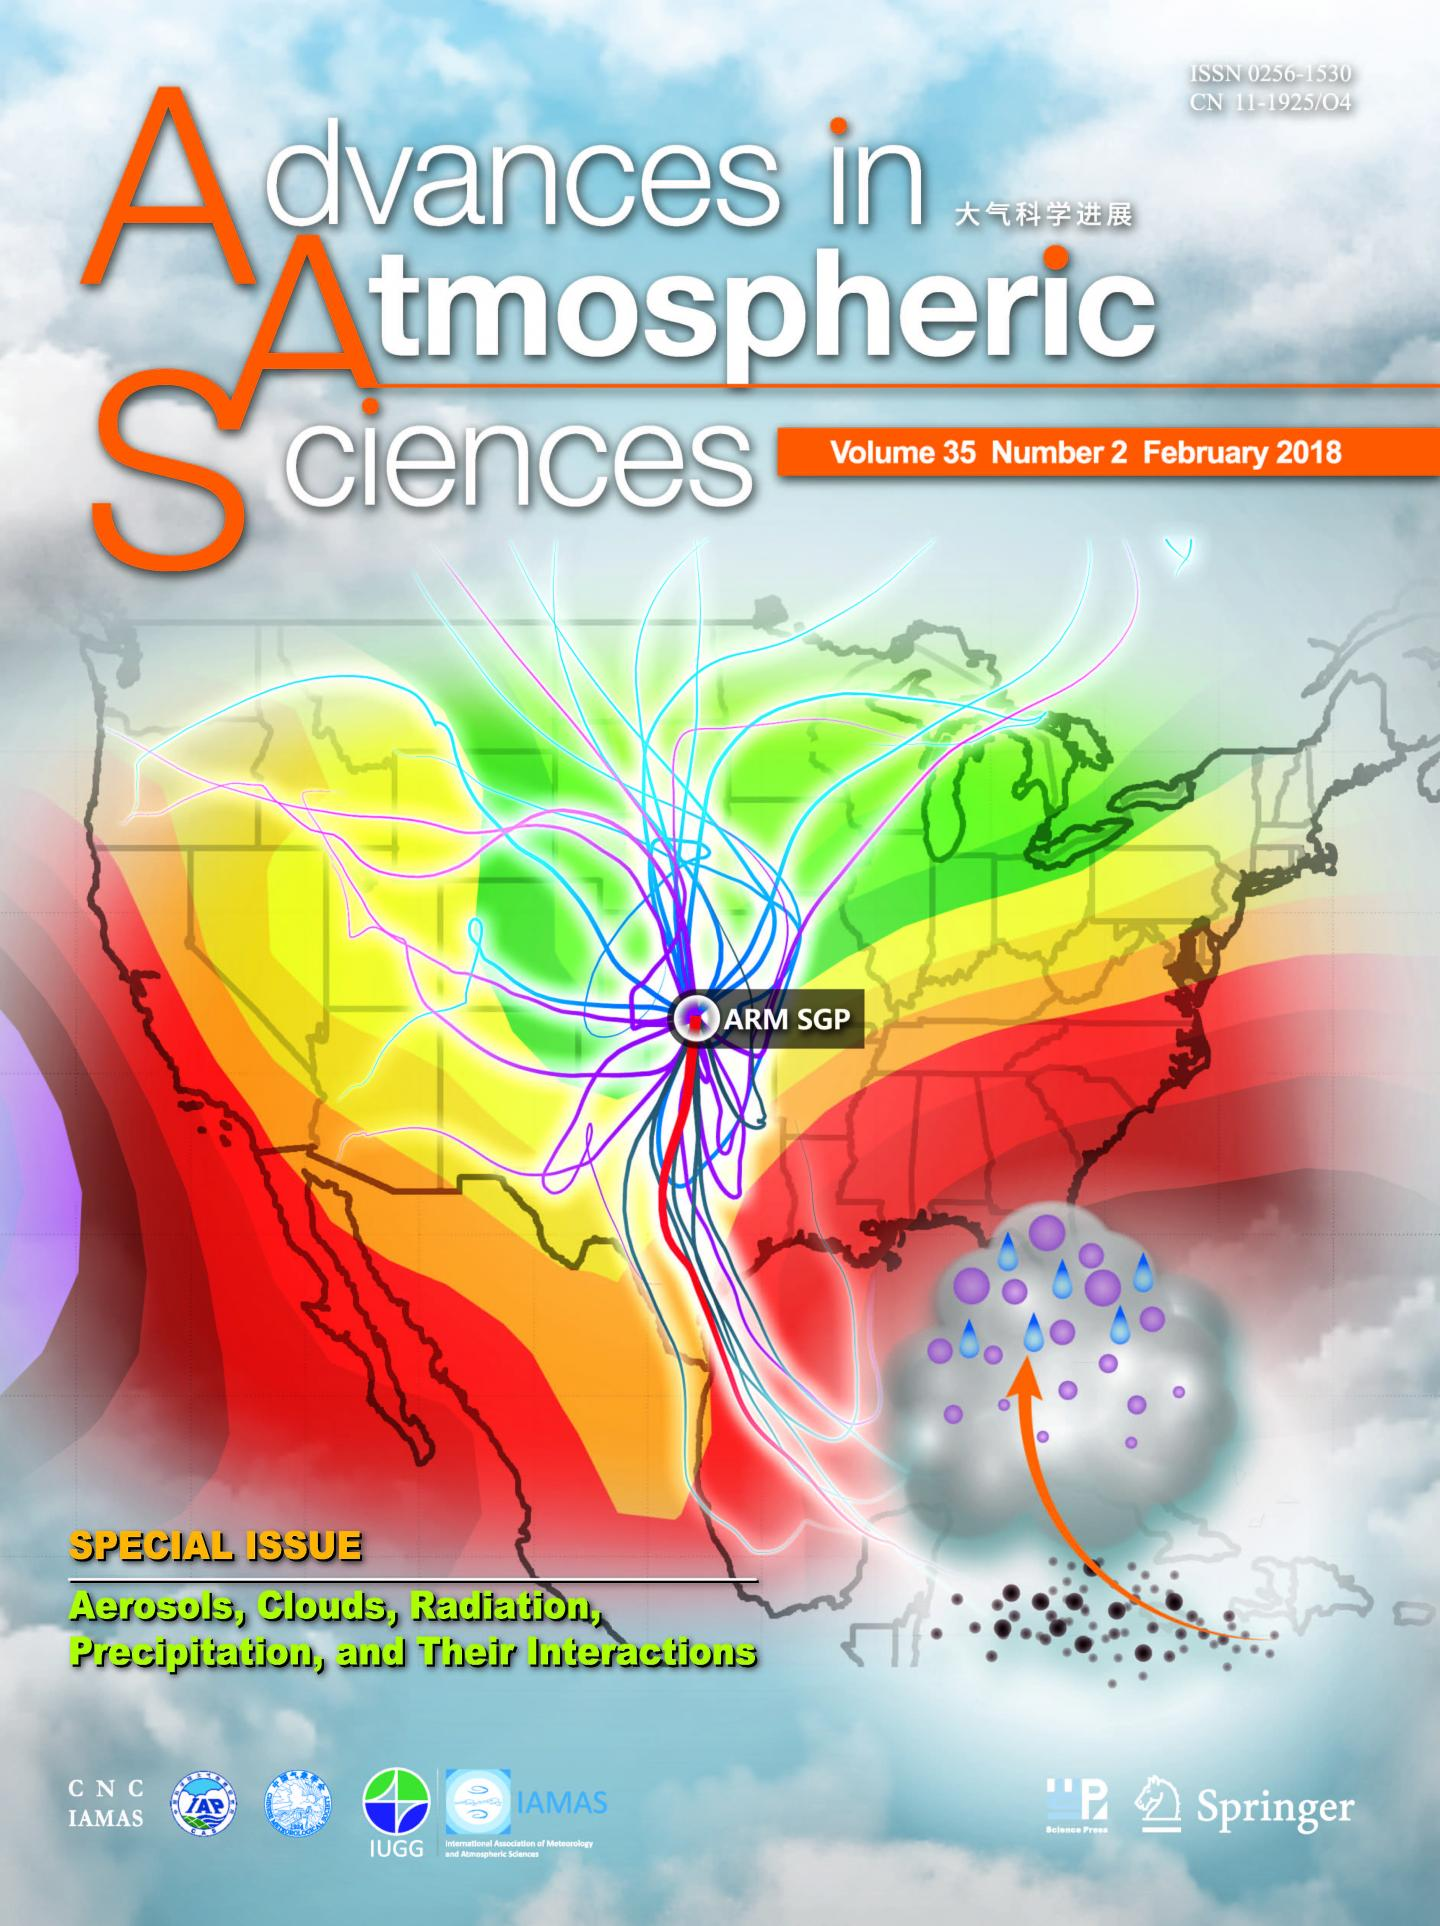 Cover of the Special Issue